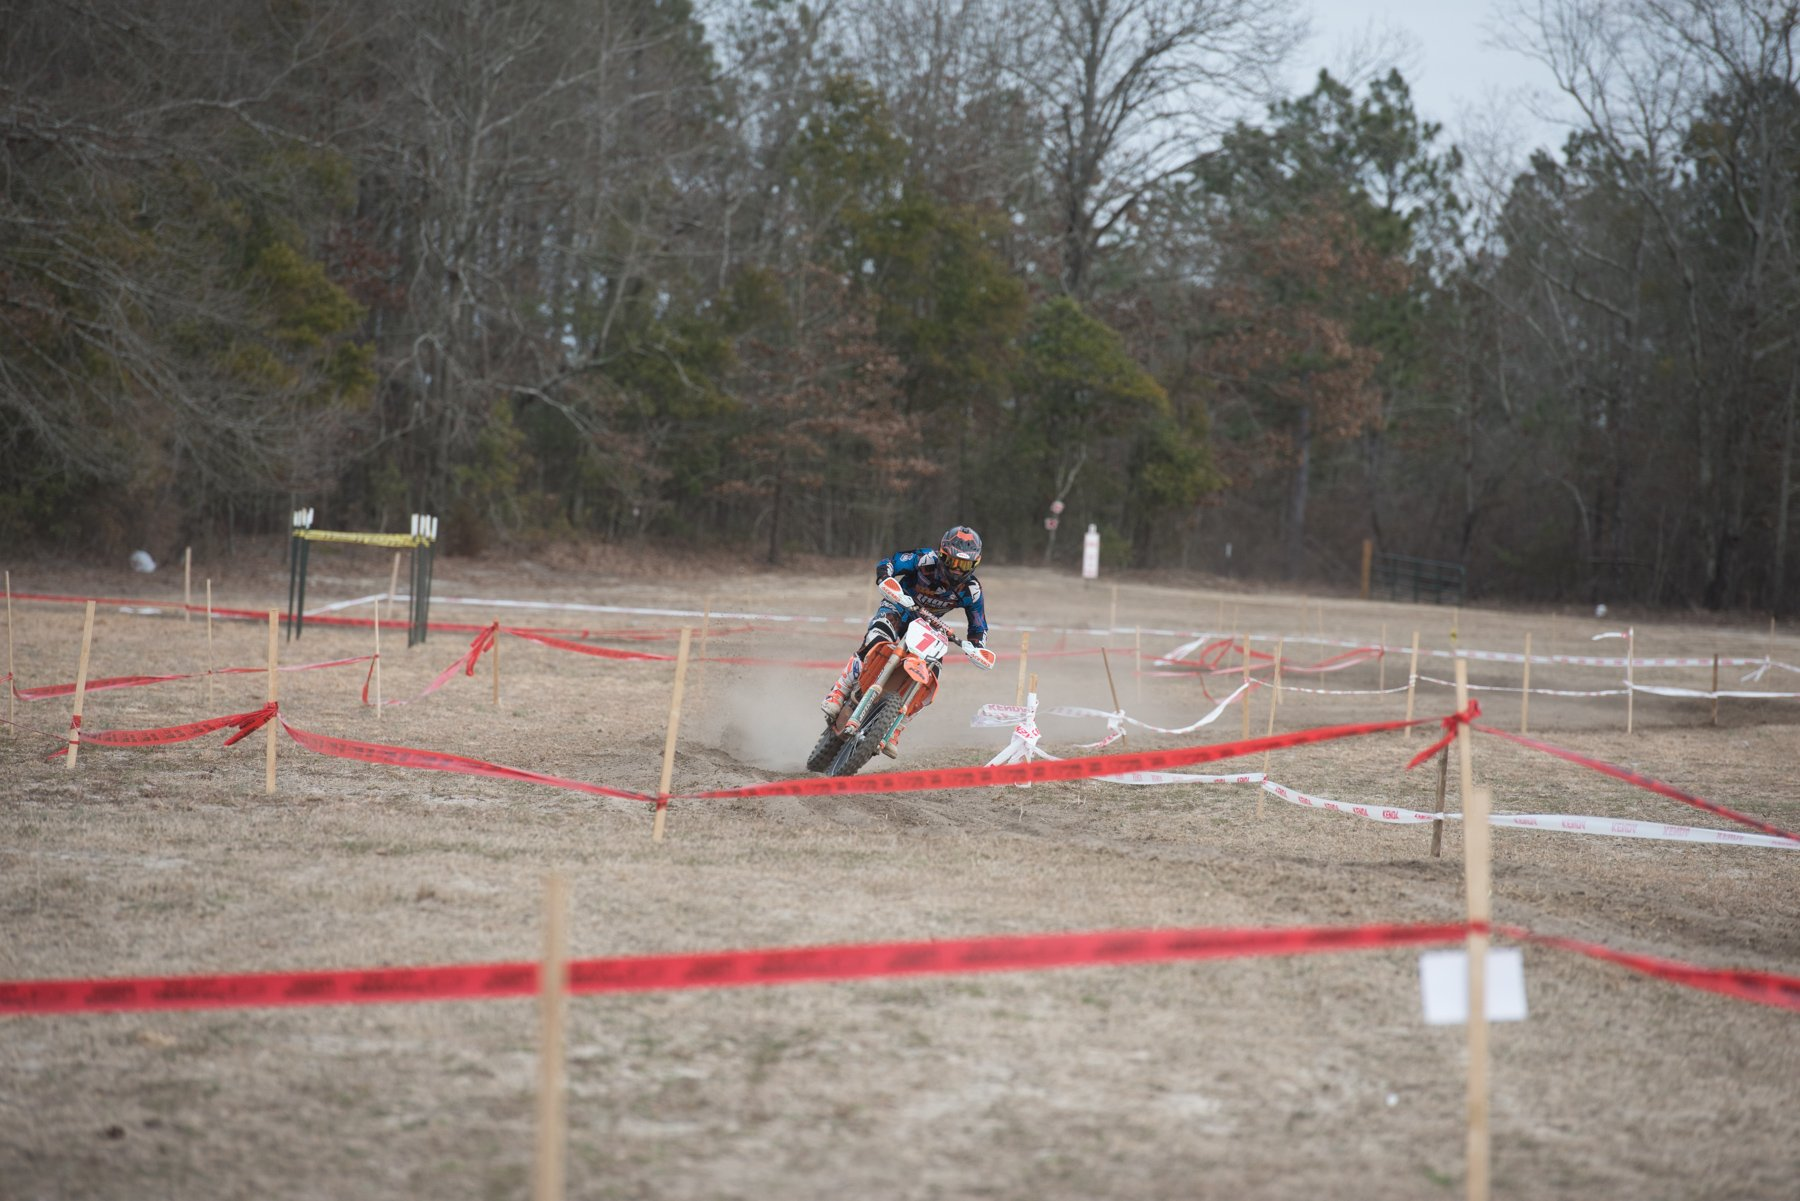 Additional Series Round Added to Serve as AMA East Coast ISDE Qualifier